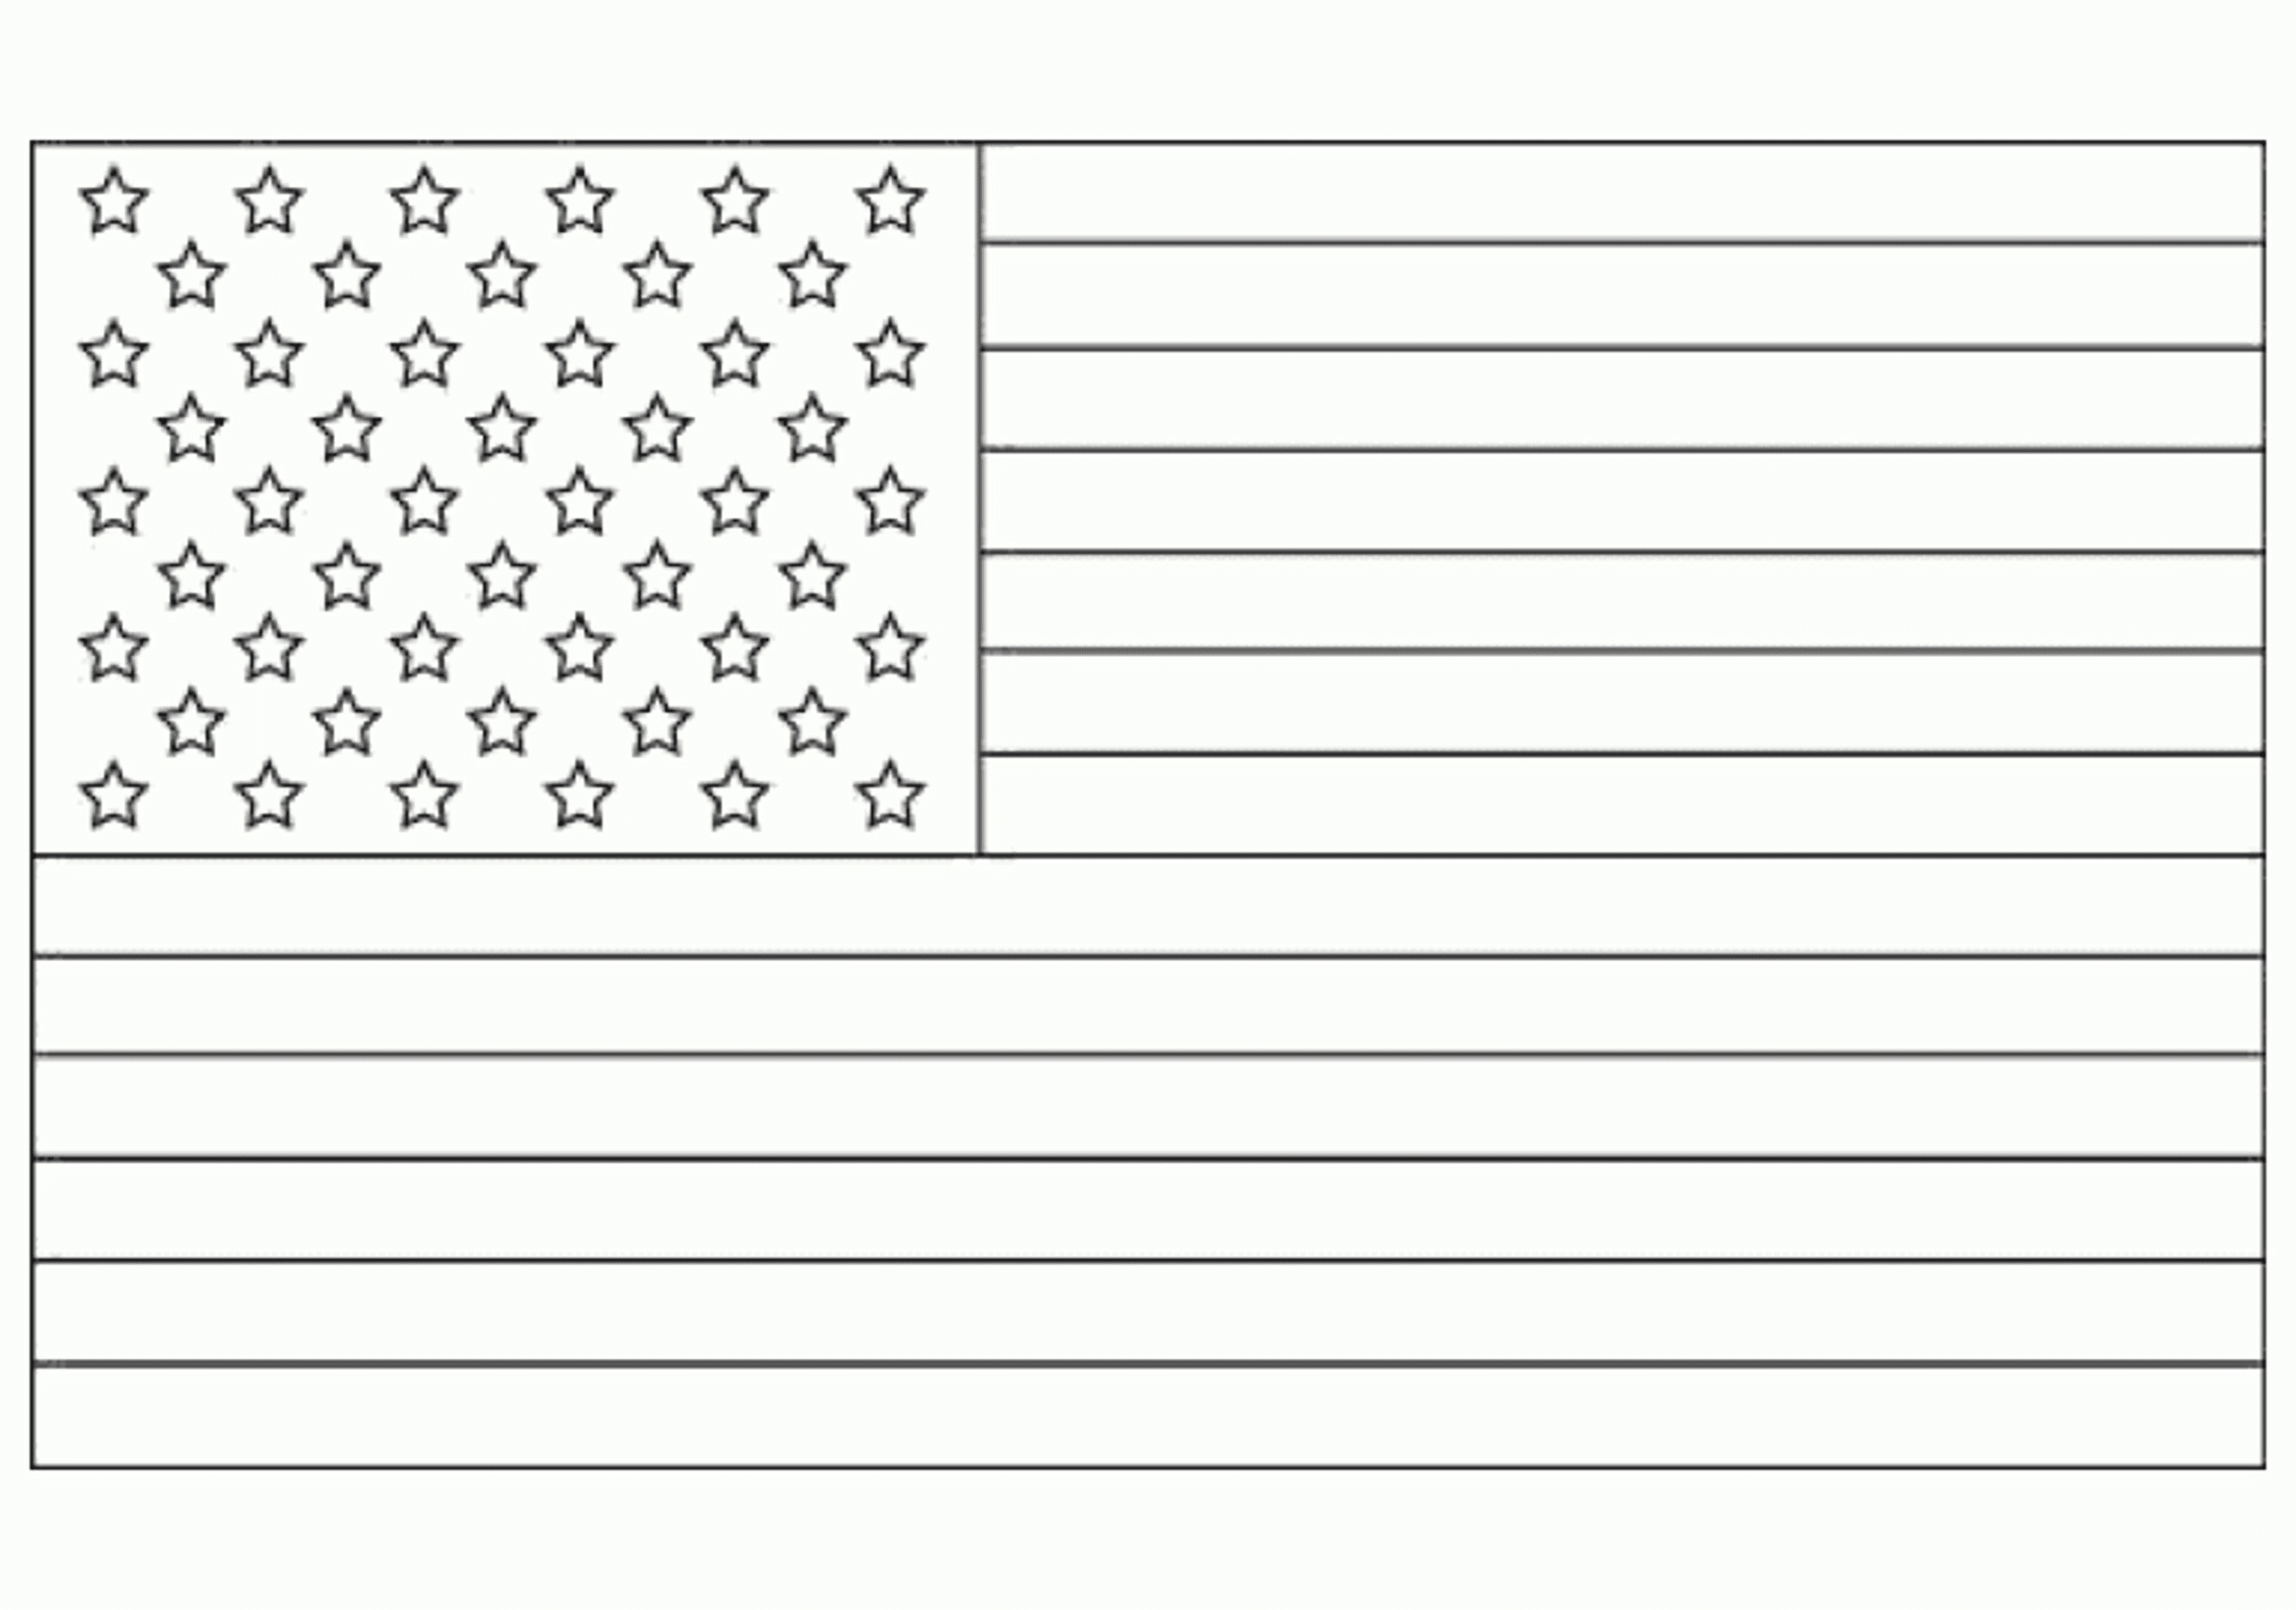 American flag coloring page for the love of the country for United states of america flag coloring page